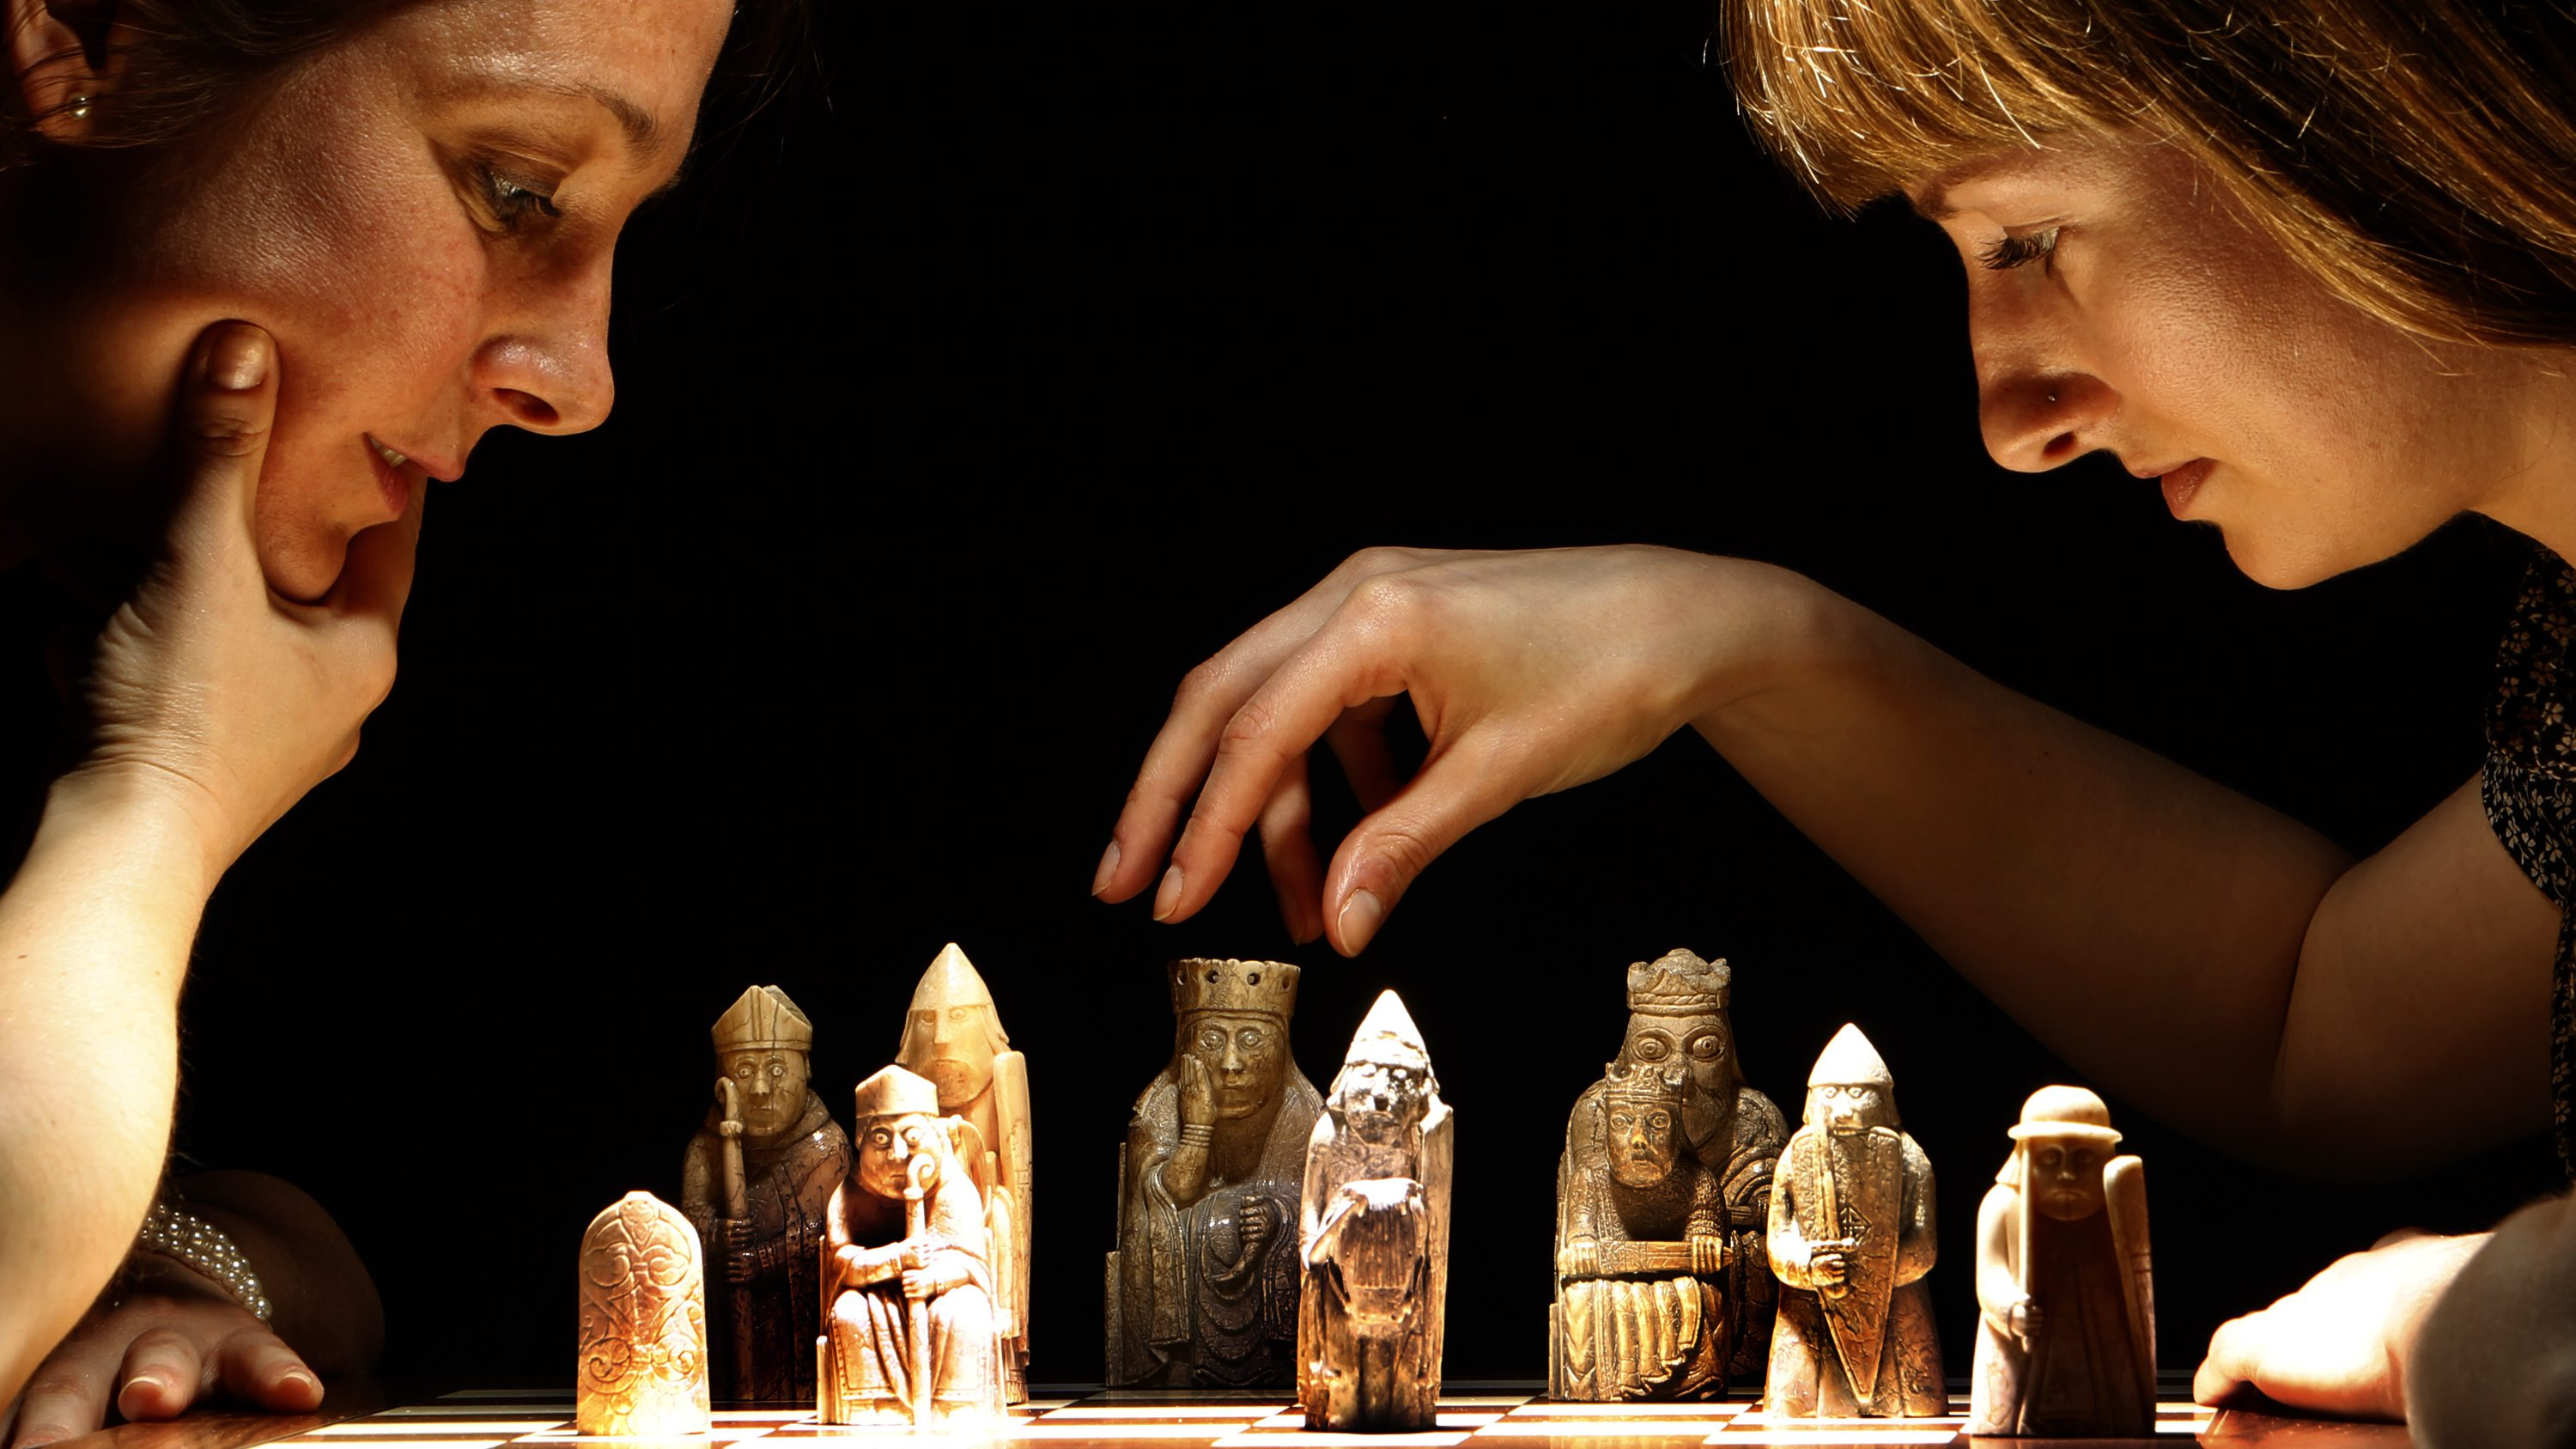 Jacqui Austin (L) and Lindsay McGill, from National Museums Scotland, pose for a game of chess for photographers with some of the Lewis Chessmen on display at the National Museum of Scotland in Edinburgh, Scotland May 20, 2010. The Lewis Chessmen consist of 93 pieces of elaborately worked walrus ivory and whales' teeth in the forms of seated kings and queens, mitred bishops, knights on their mounts, standing warders and pawns in the shape of obelisks. They are thought to have been made in Norway about AD 1150-1200 and were found on the Isle of Lewis, Outer Hebrides, Scotland in the late 1800's.